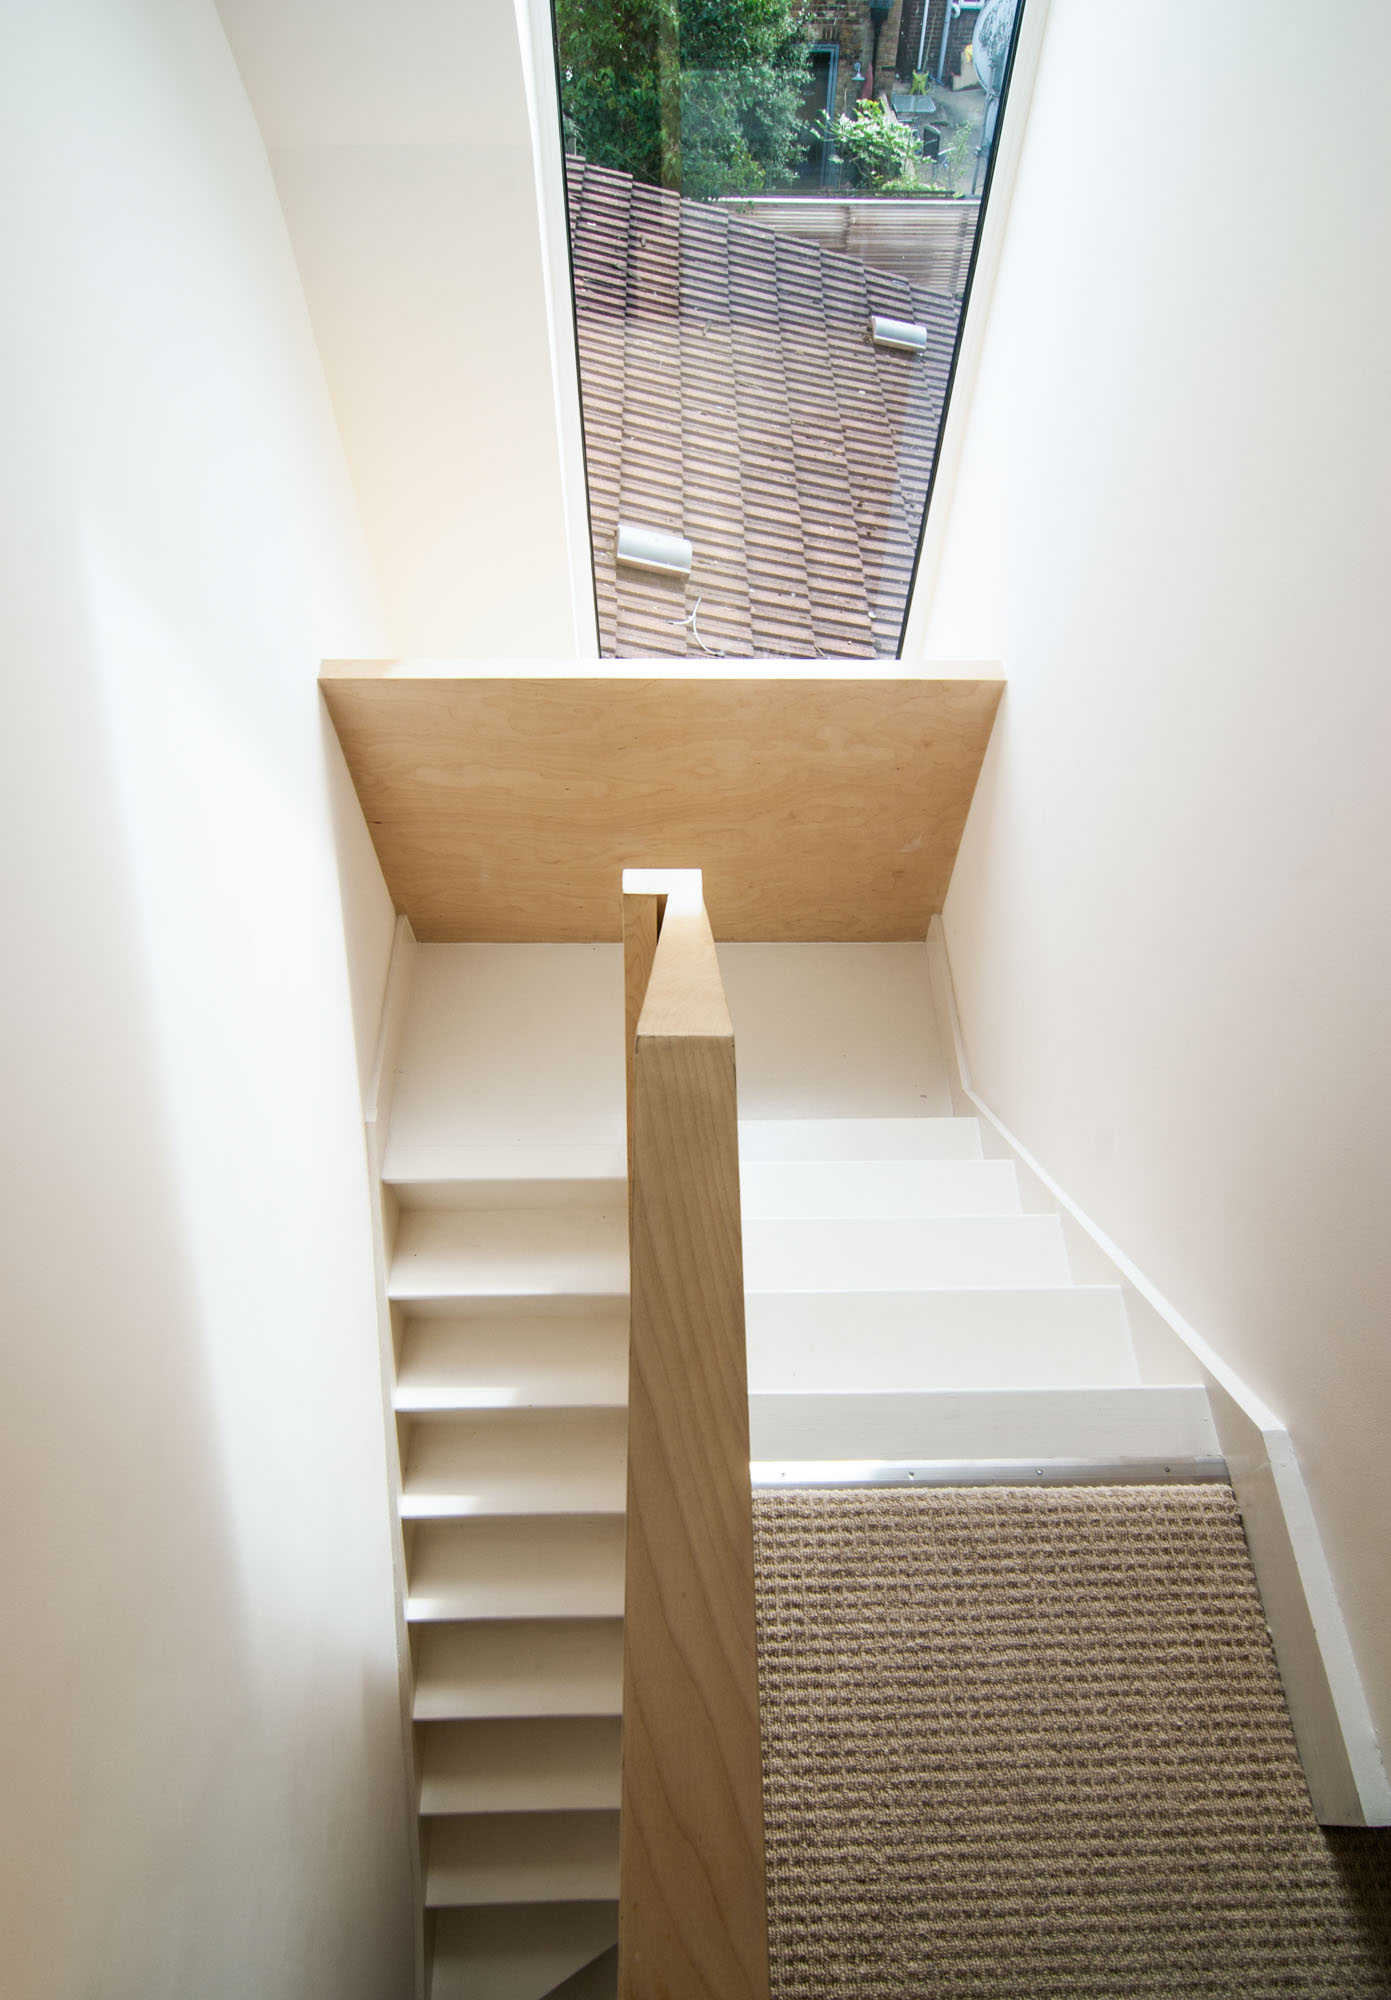 Large window allowing plenty of sunlight to shine inside the house and onto the bespoke plywood balustrade.